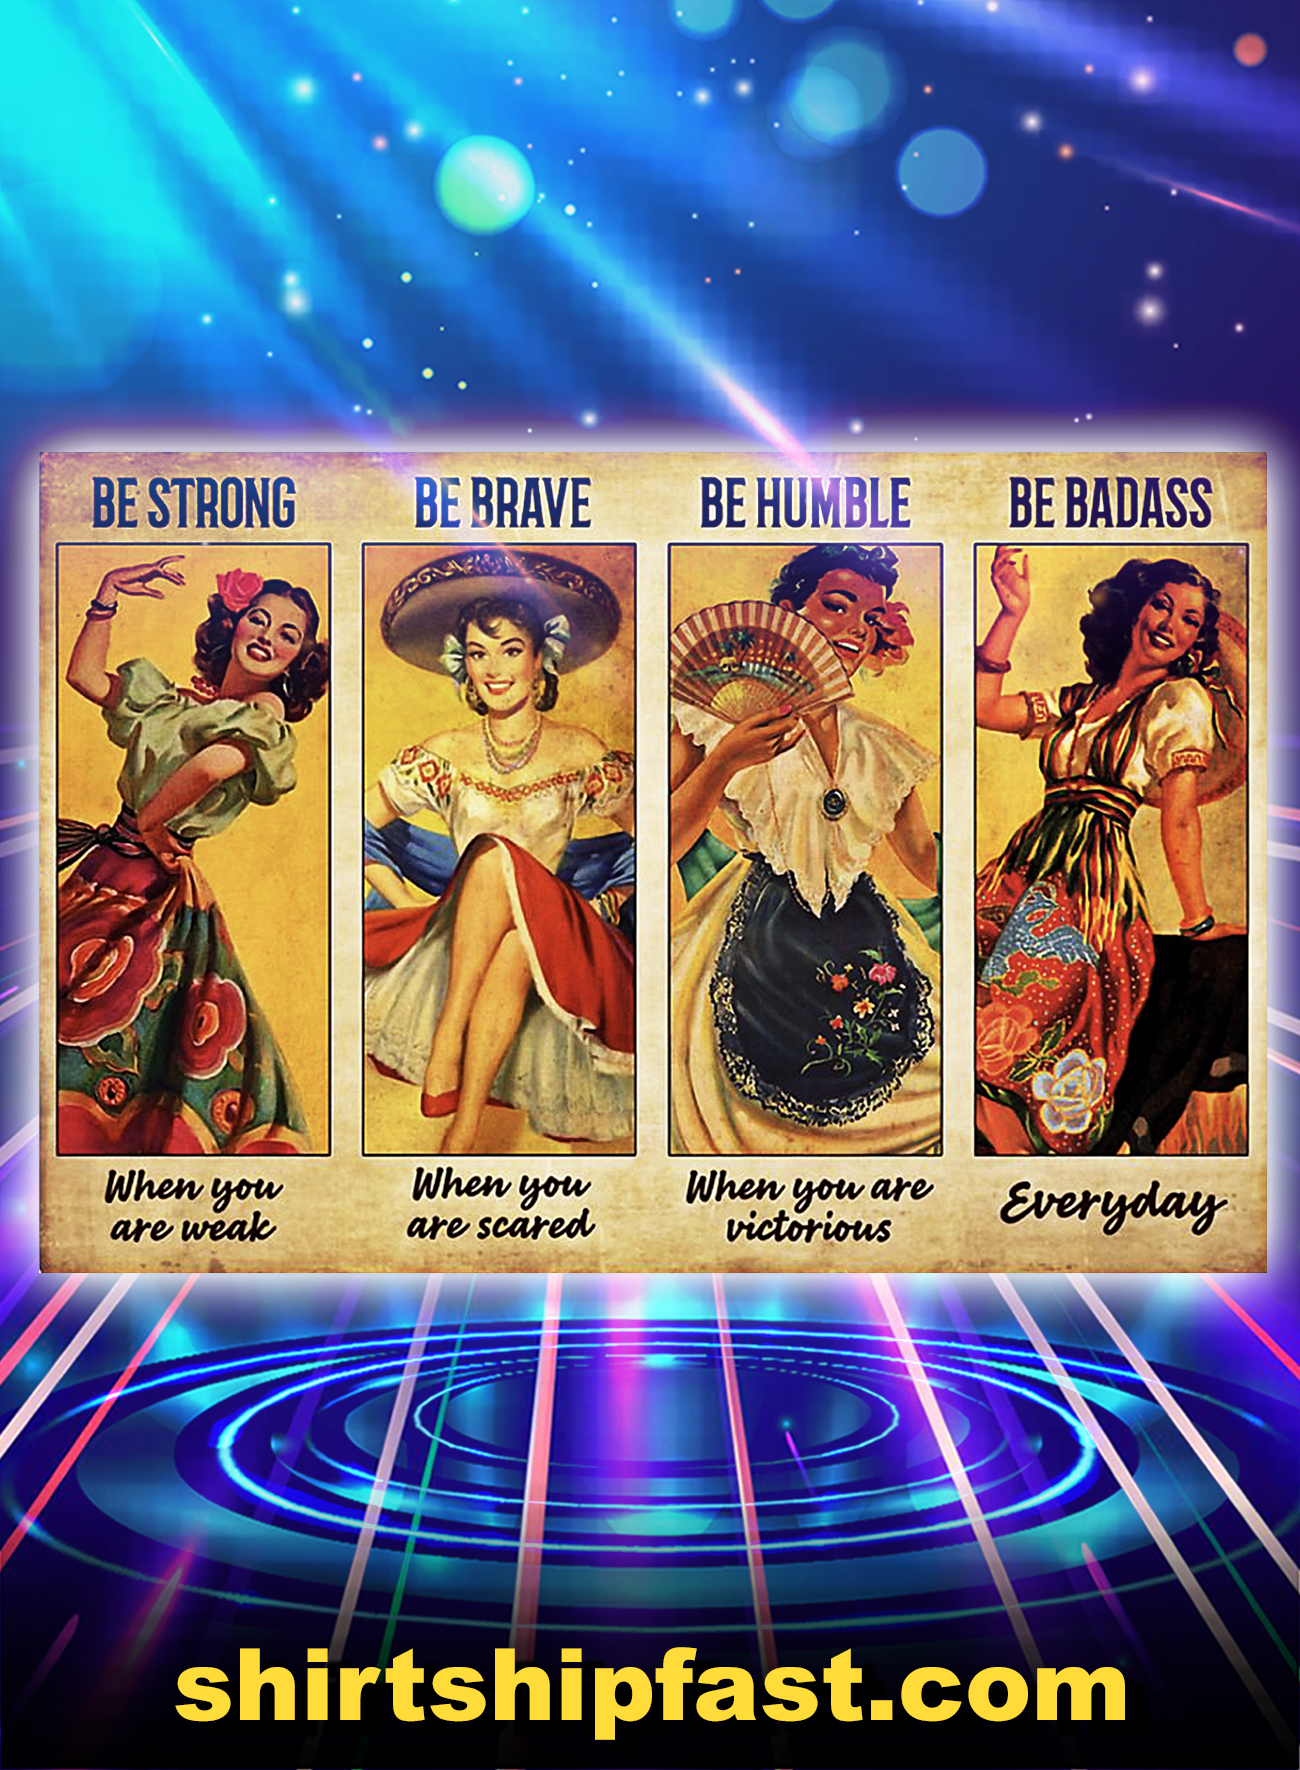 Women Mexican Dancing be strong be brave be humble be badass poster